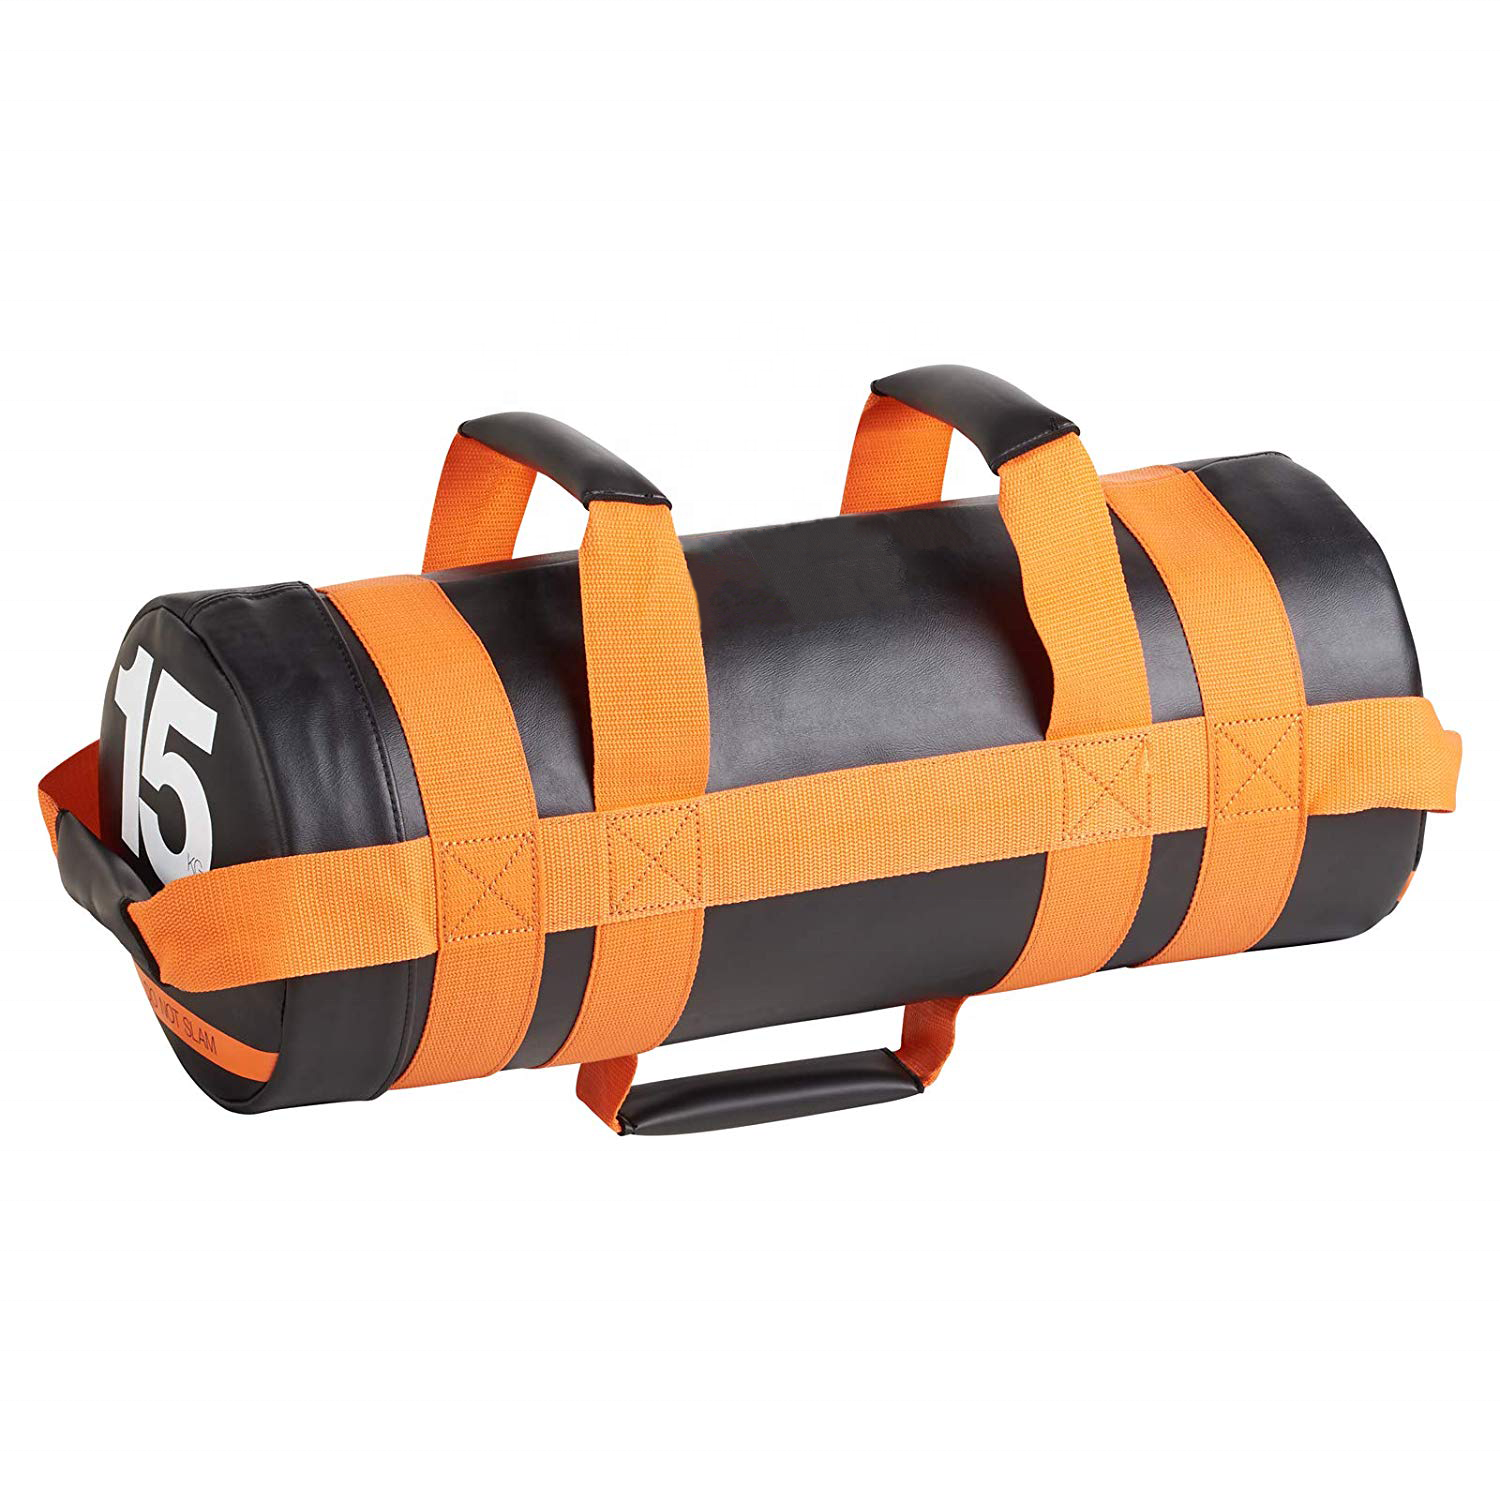 New Arrival Sandbag with Handles for Core Strength Training